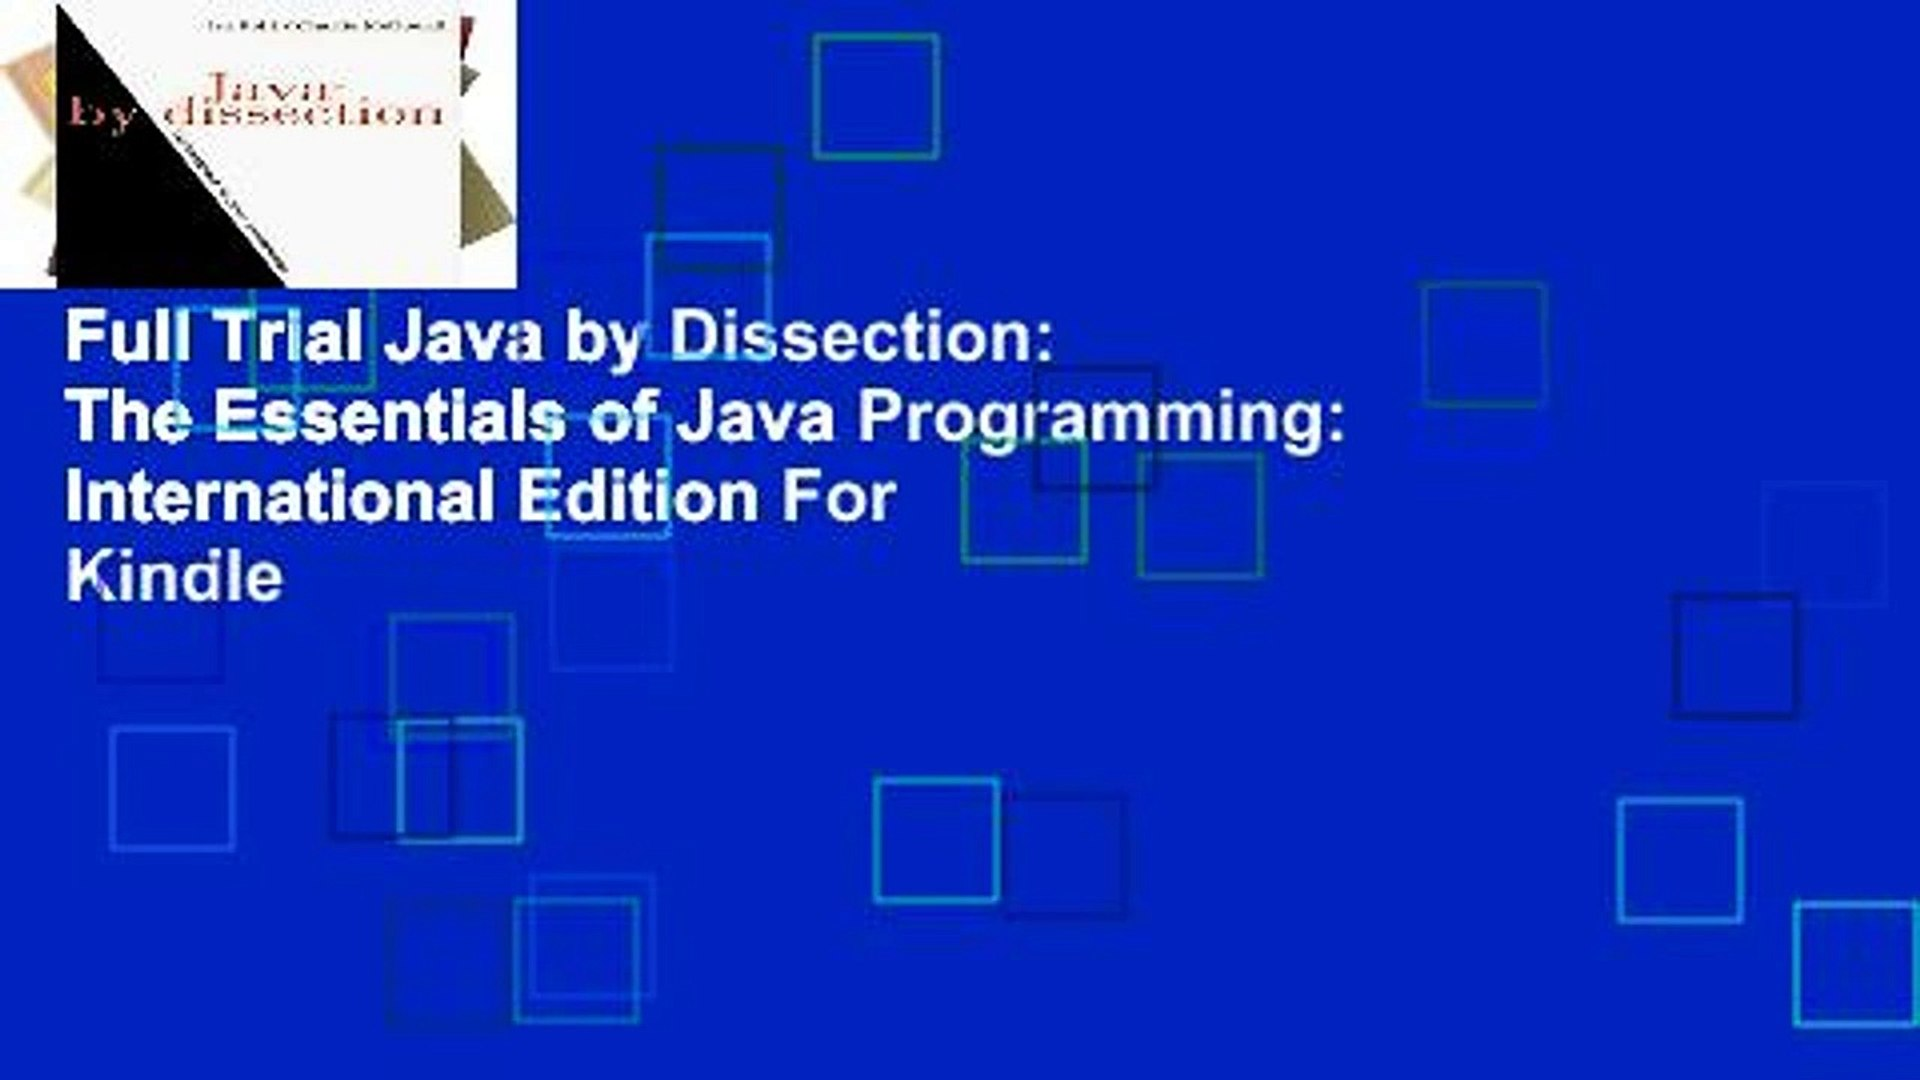 Full Trial Java by Dissection: The Essentials of Java Programming: International Edition For Kindle